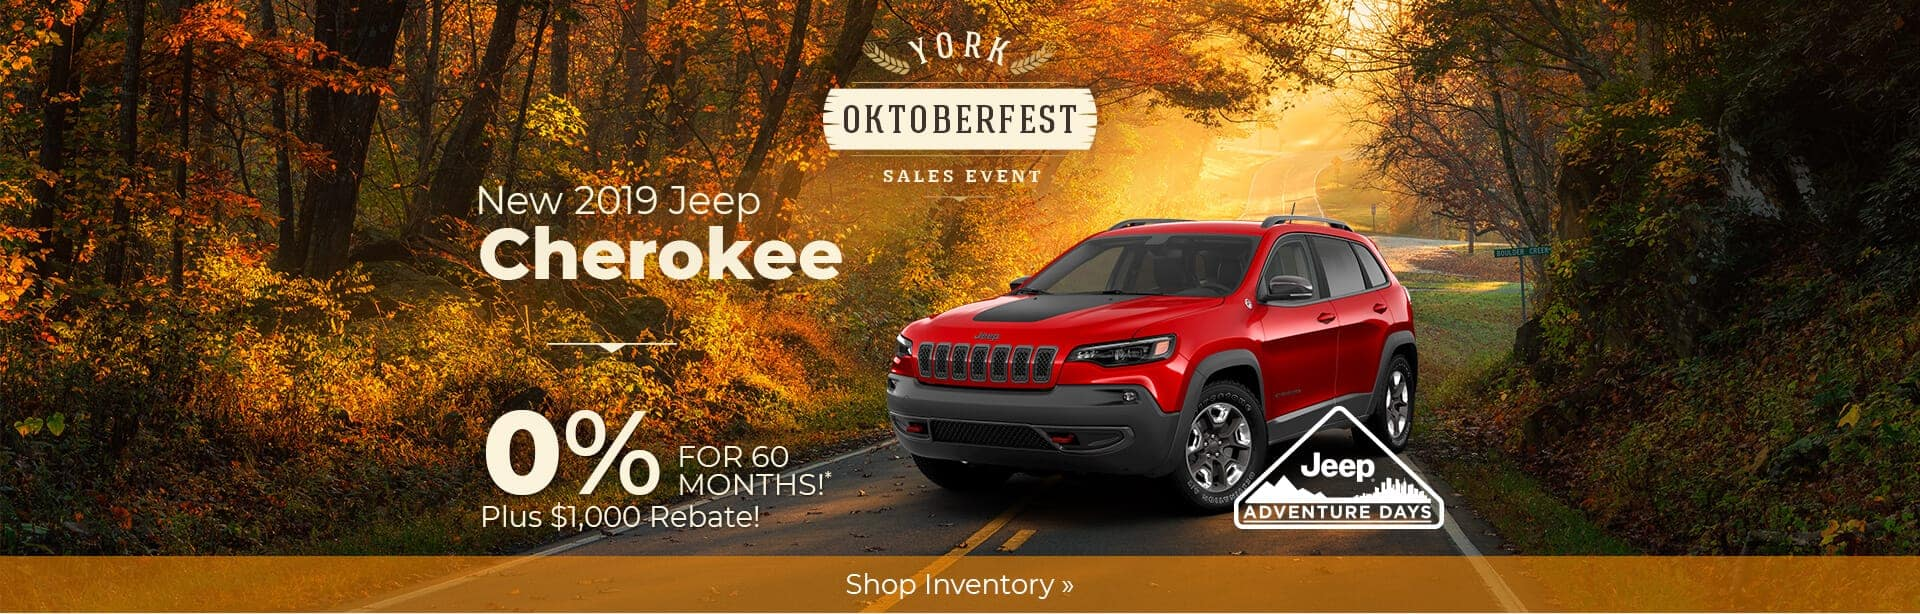 2019 Jeep Cherokee 0% Financing near Lafayette, Indiana.